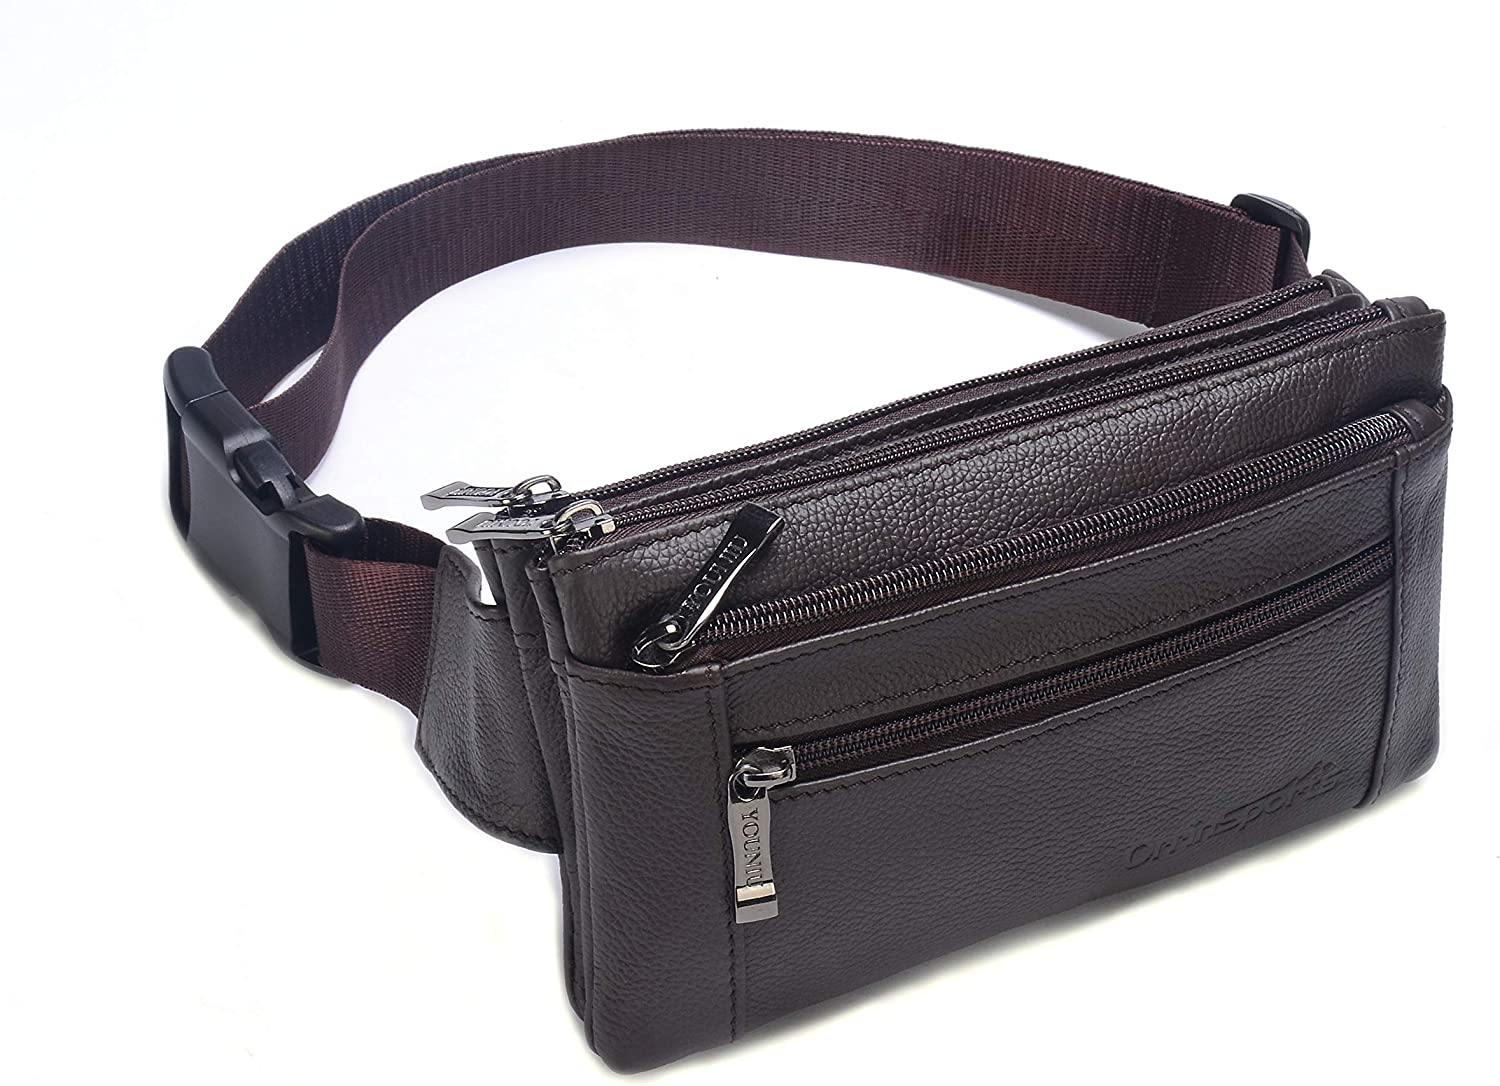 OrrinSports Leather Waist Bag Multiple Pockets Fanny Pack for Women Men Daily Life and Travel Outdoor